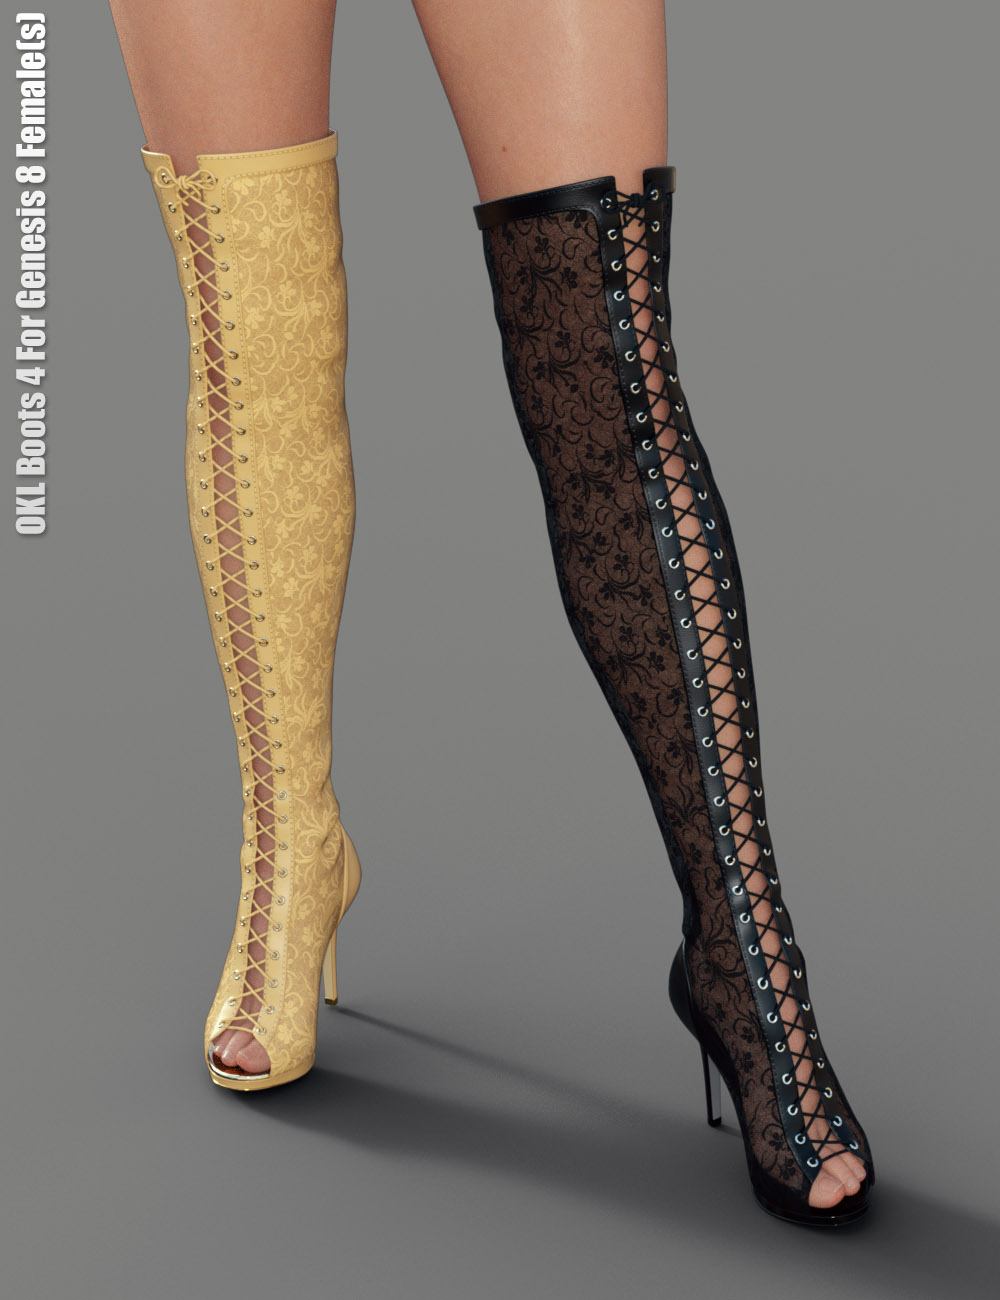 OKL Boots 4 for Genesis 8 Female(s) by: dx30, 3D Models by Daz 3D